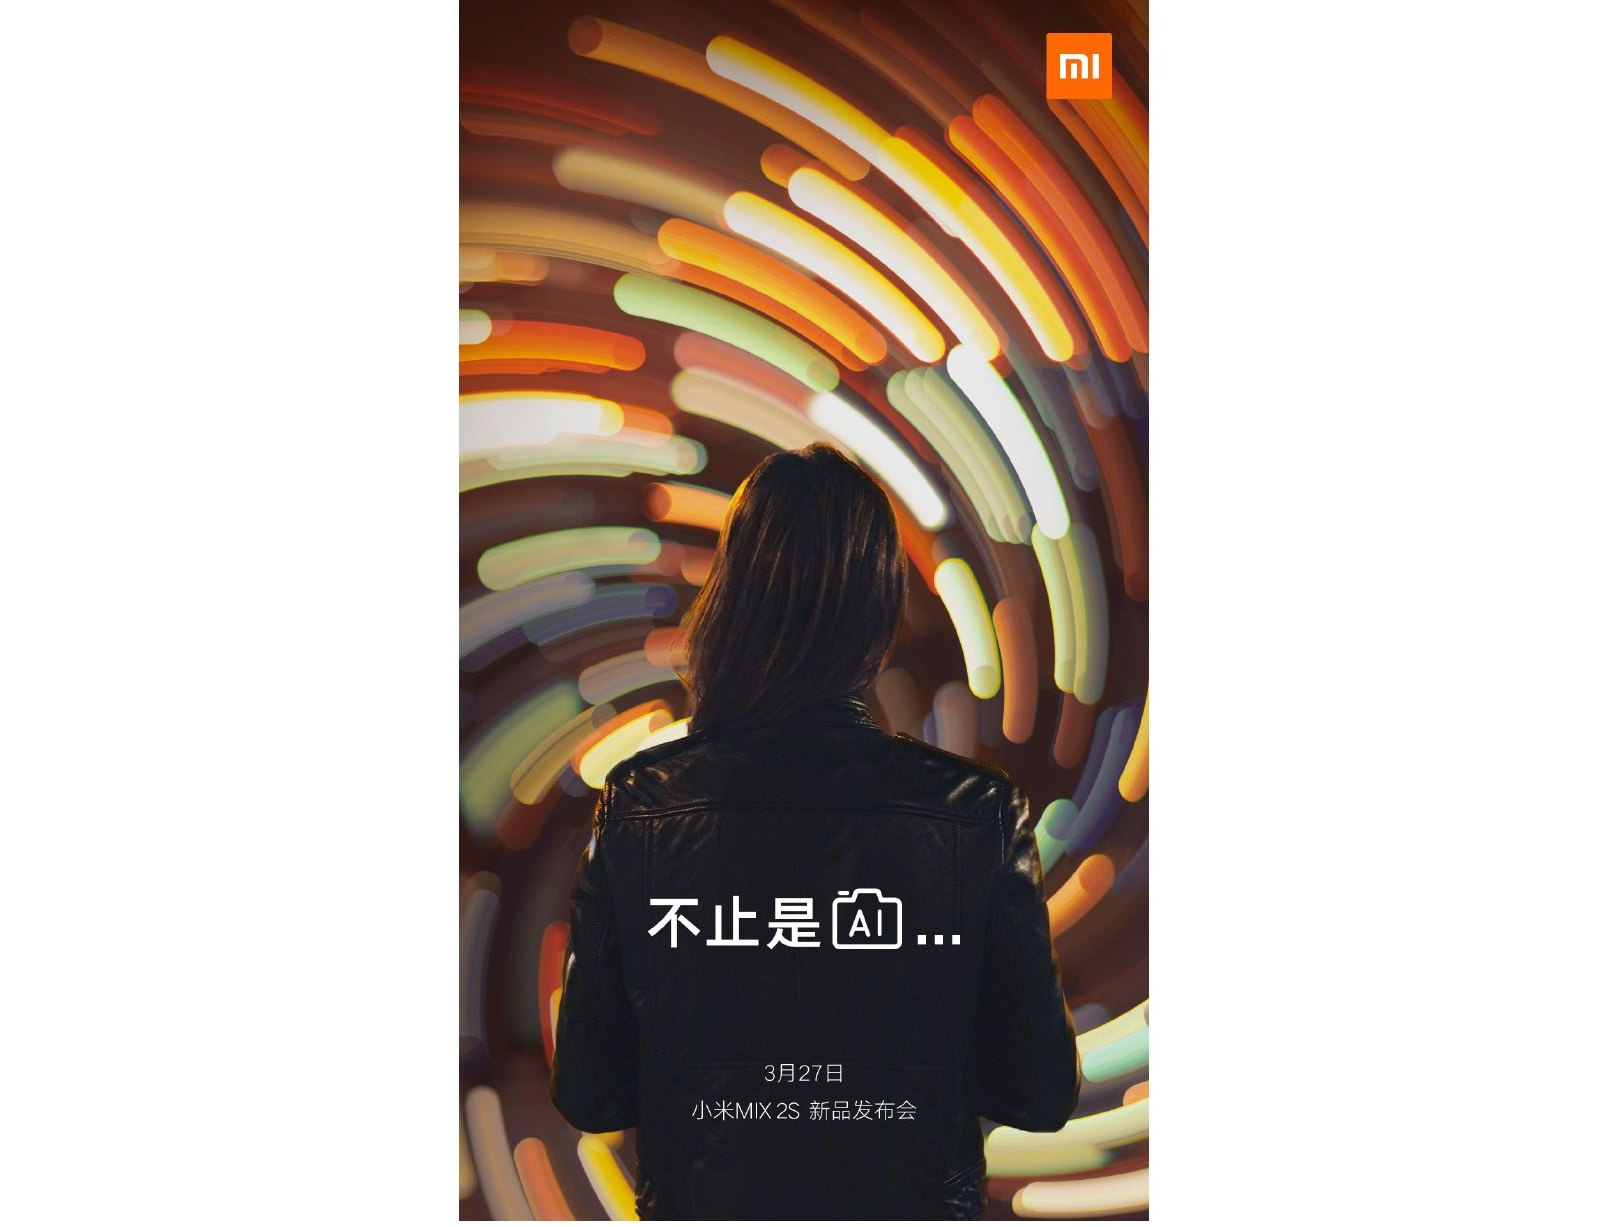 Xiaomi Mi Mix 2S First Teaser